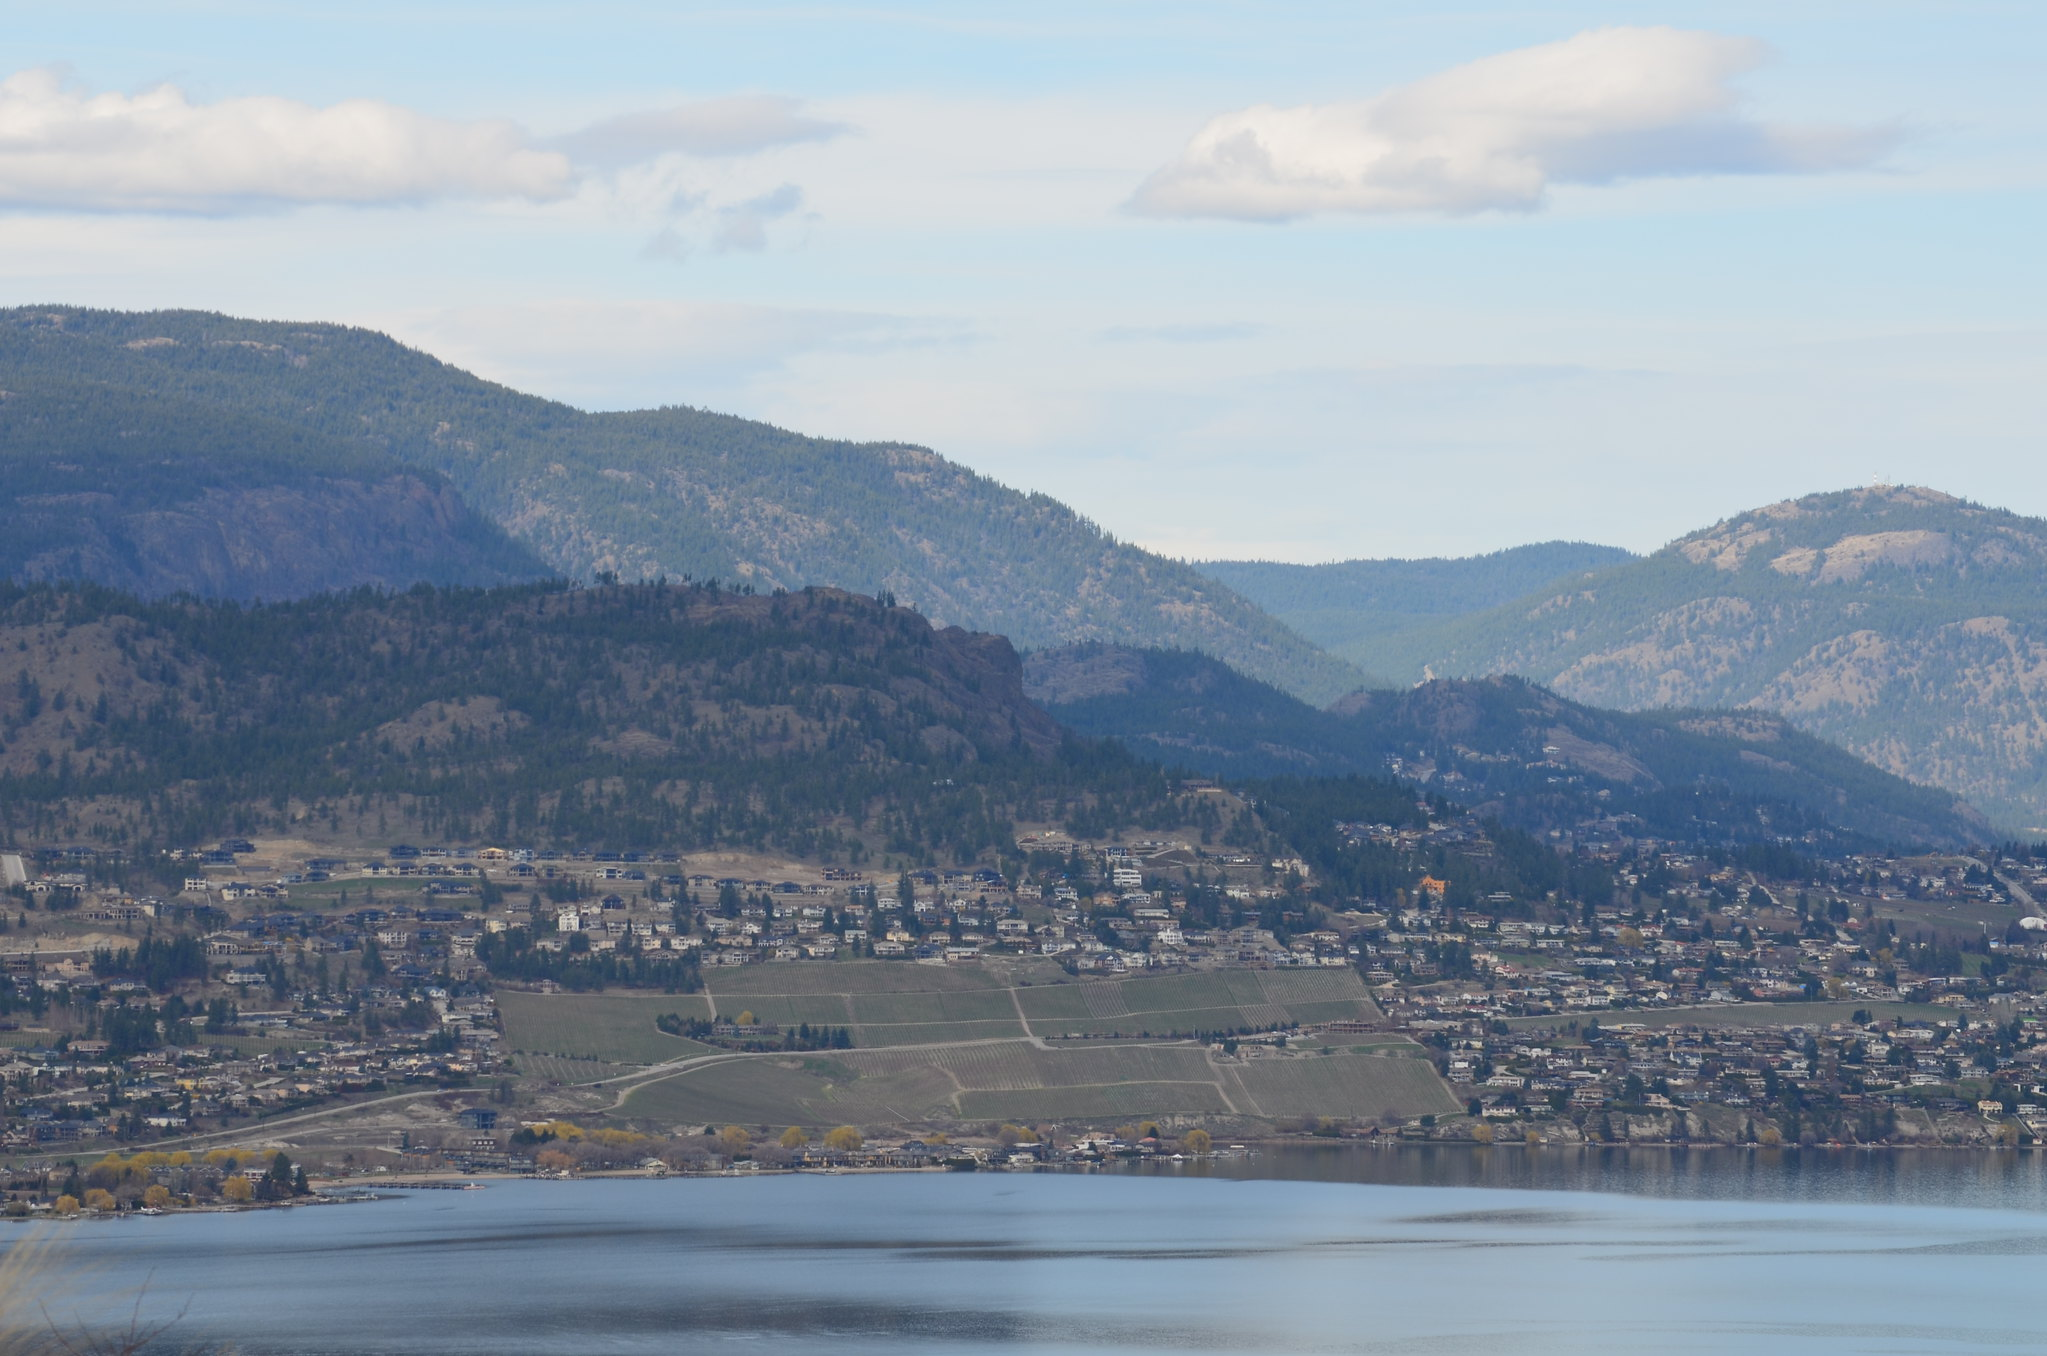 View of West Kelowna